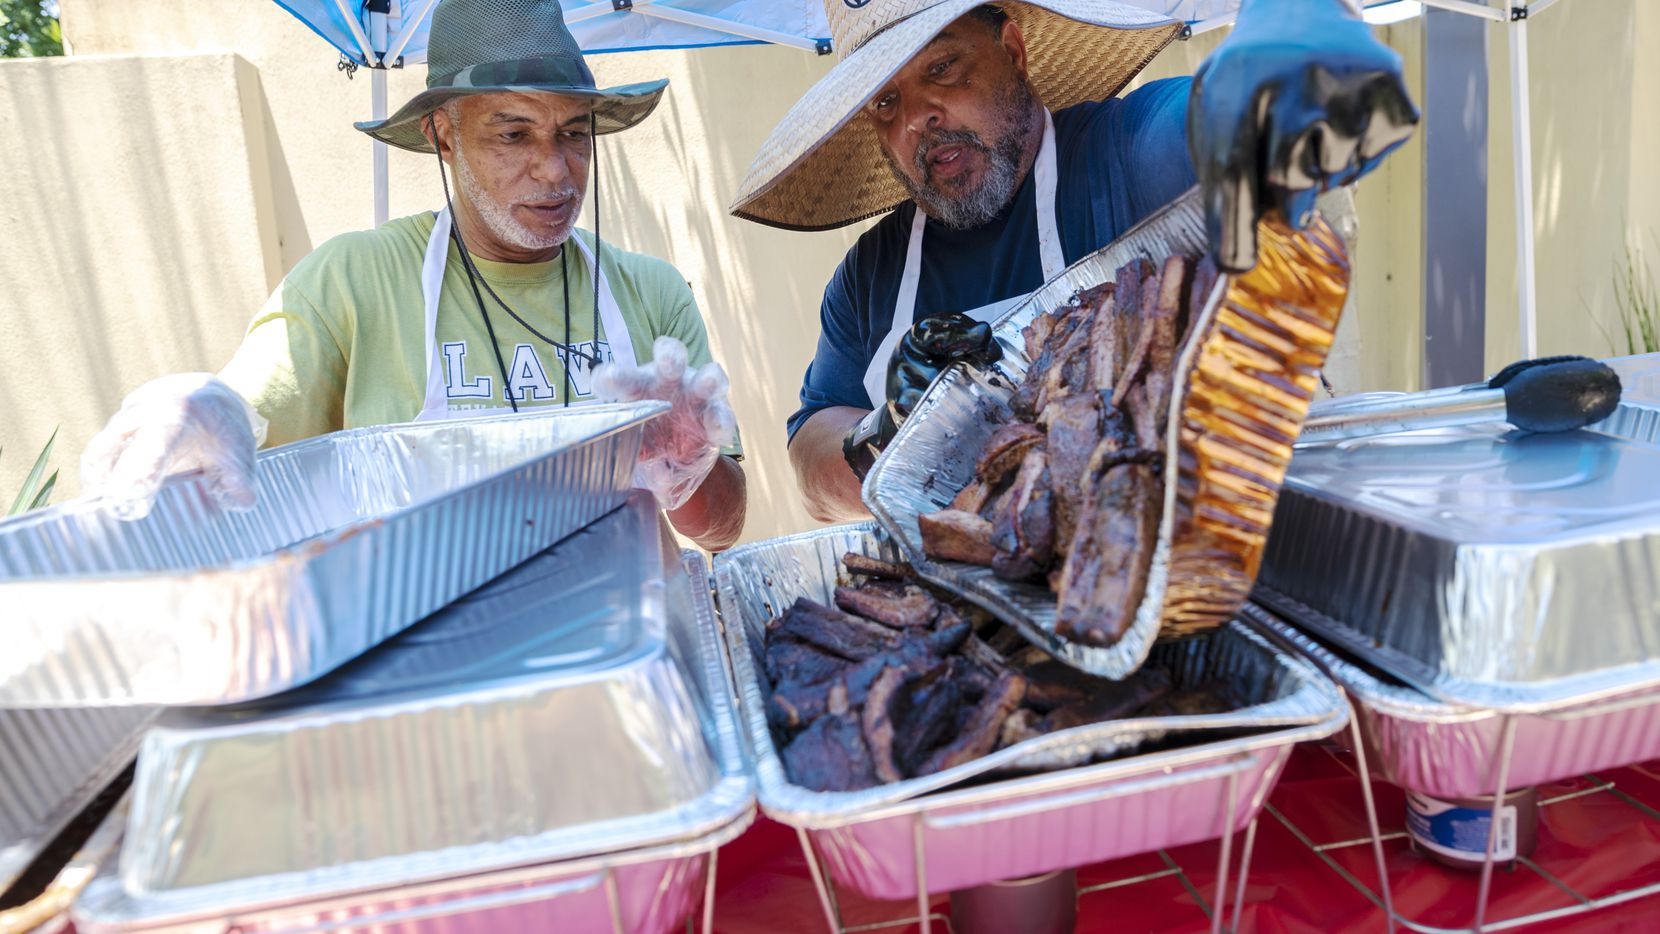 Co-owners Ernest Moore (left) and Ron Evans of Breaux BBQ dished up smoked meats during Saturday's joint Father's Day/Juneteeth event put on by City Men Cook and the African American Museum at Dallas' Fair Park.